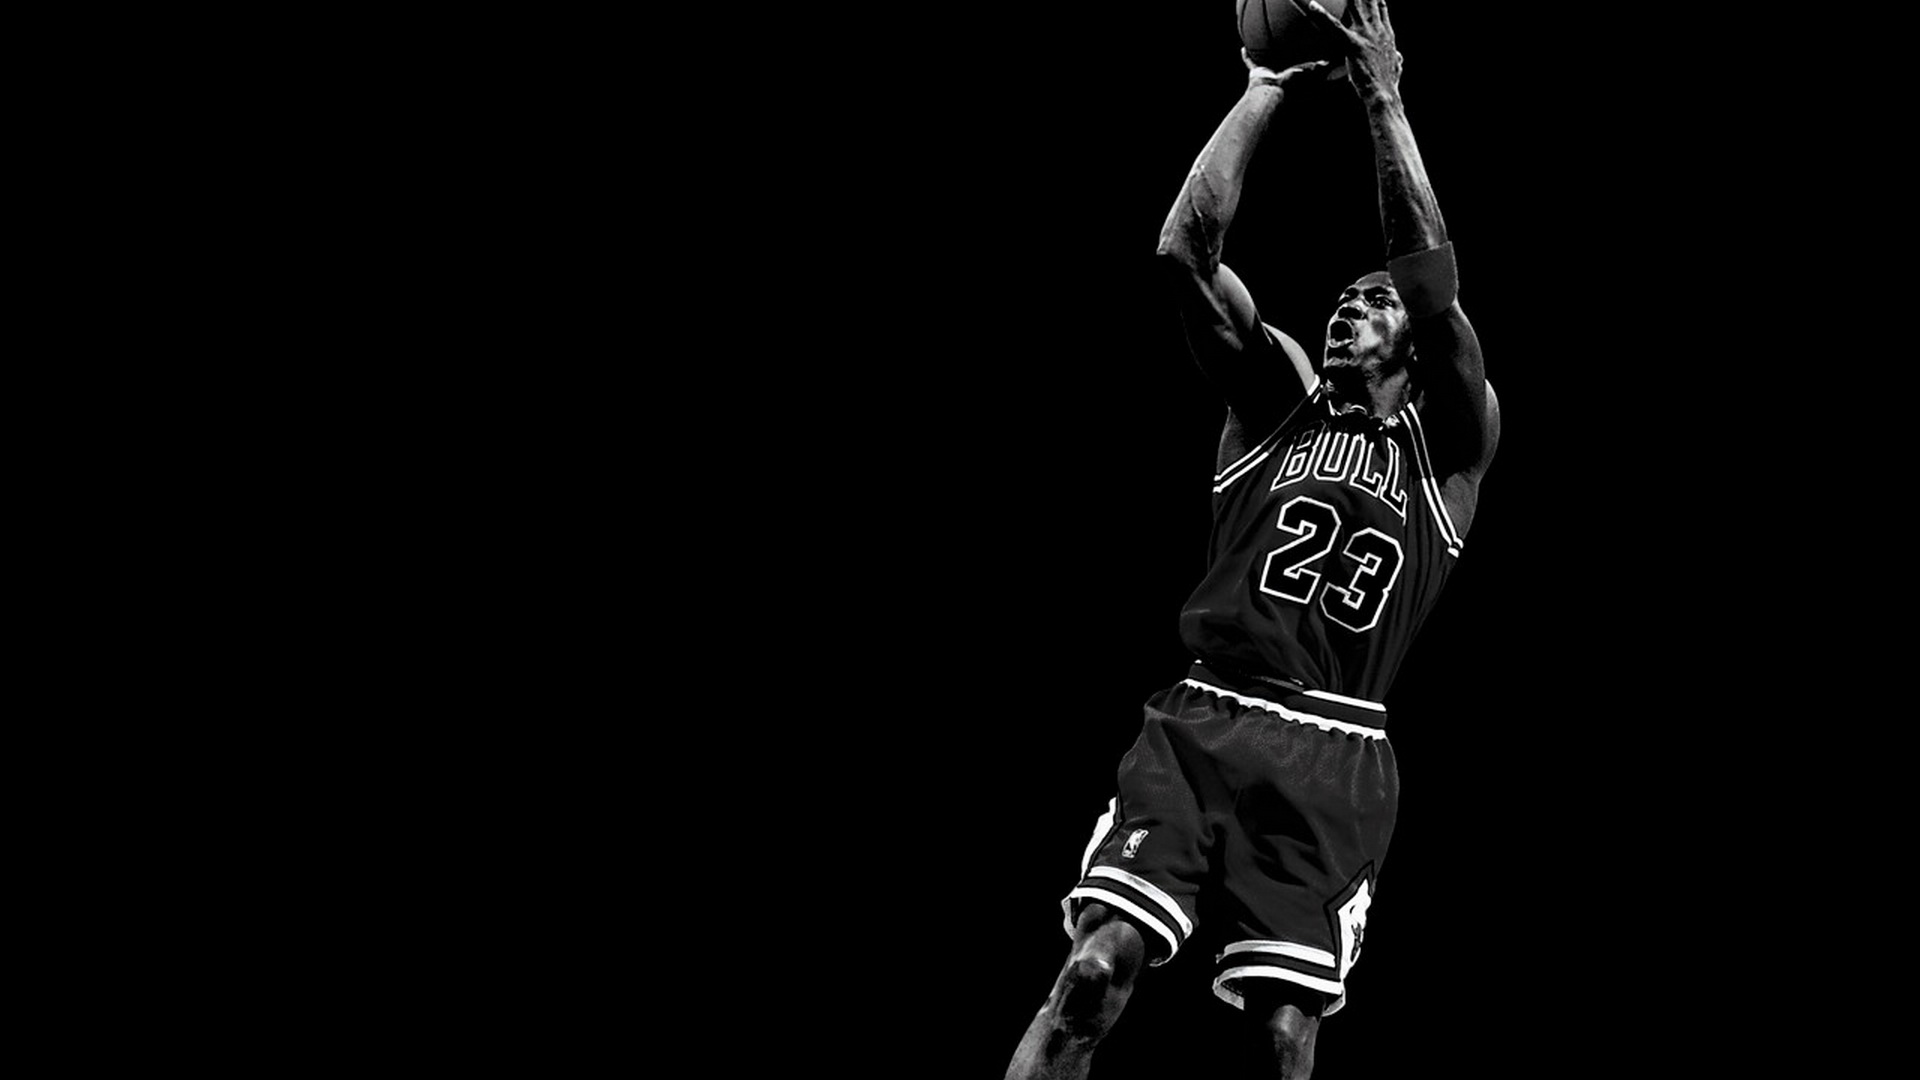 Michael Jordan Hd Wallpapers - WallpaperSafari